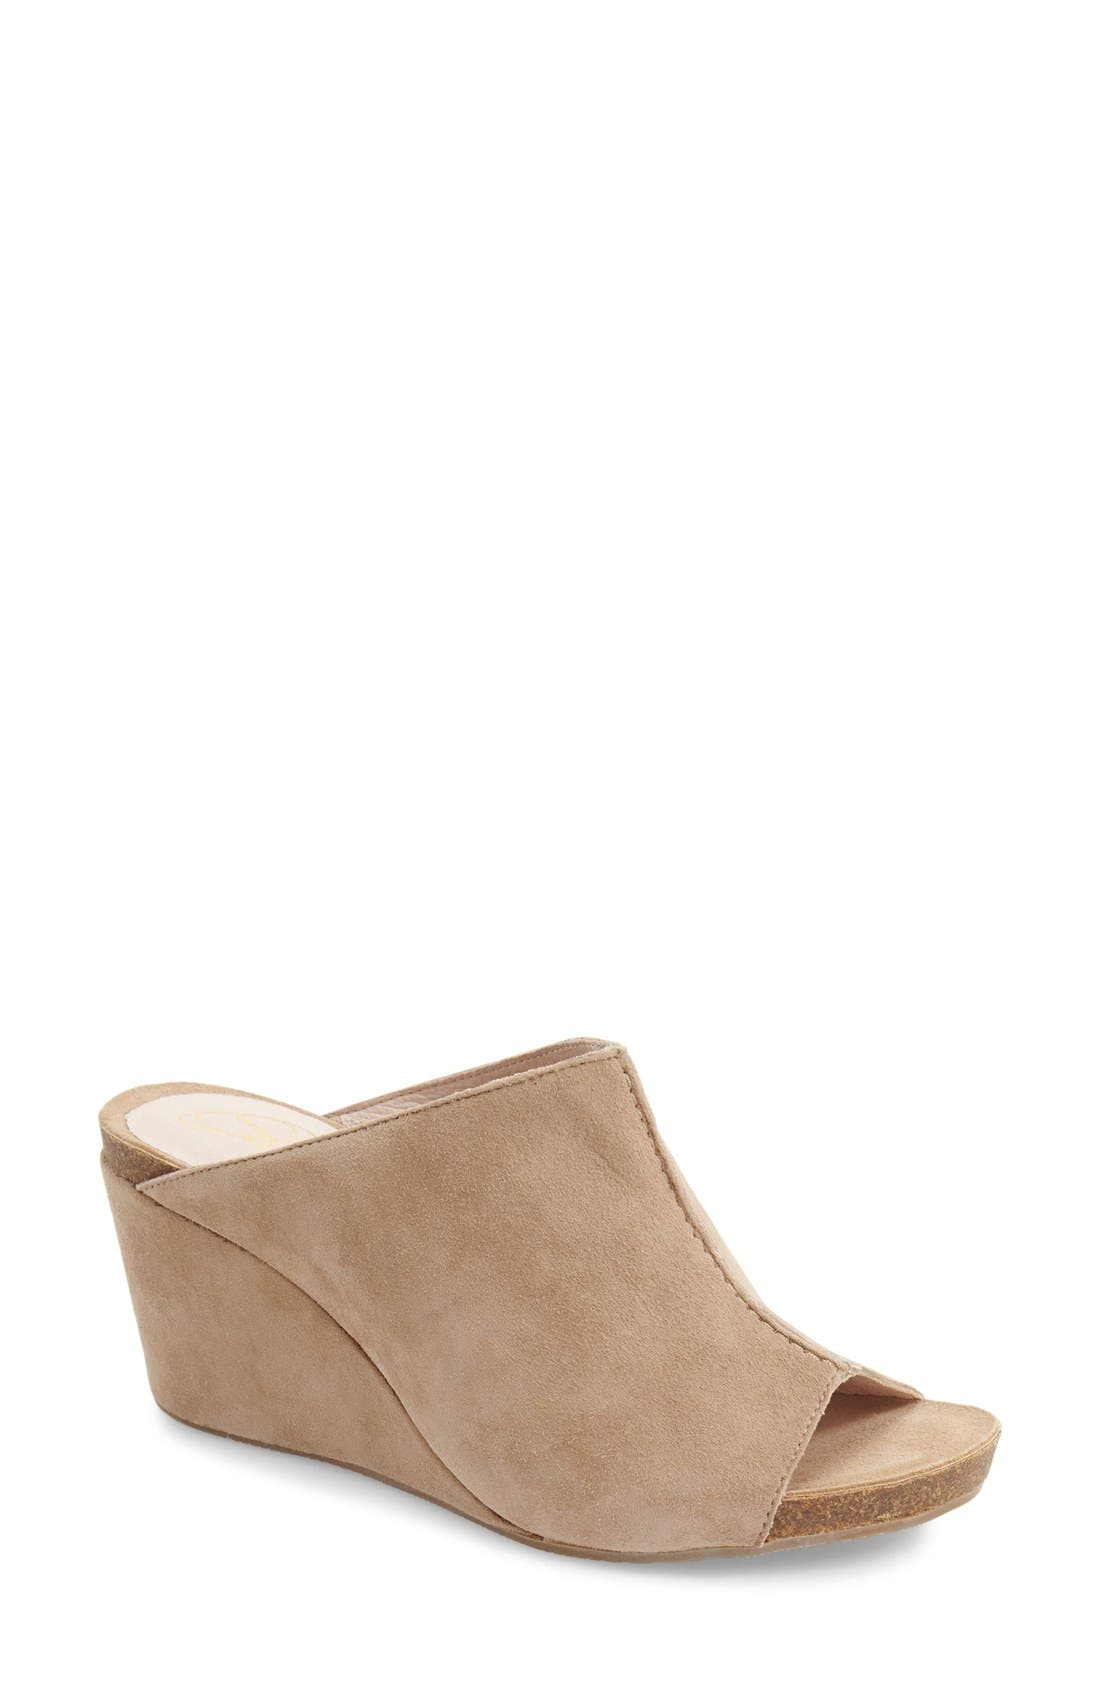 c1b9ad0d0081 Sudini  Bailey  Suede Wedge